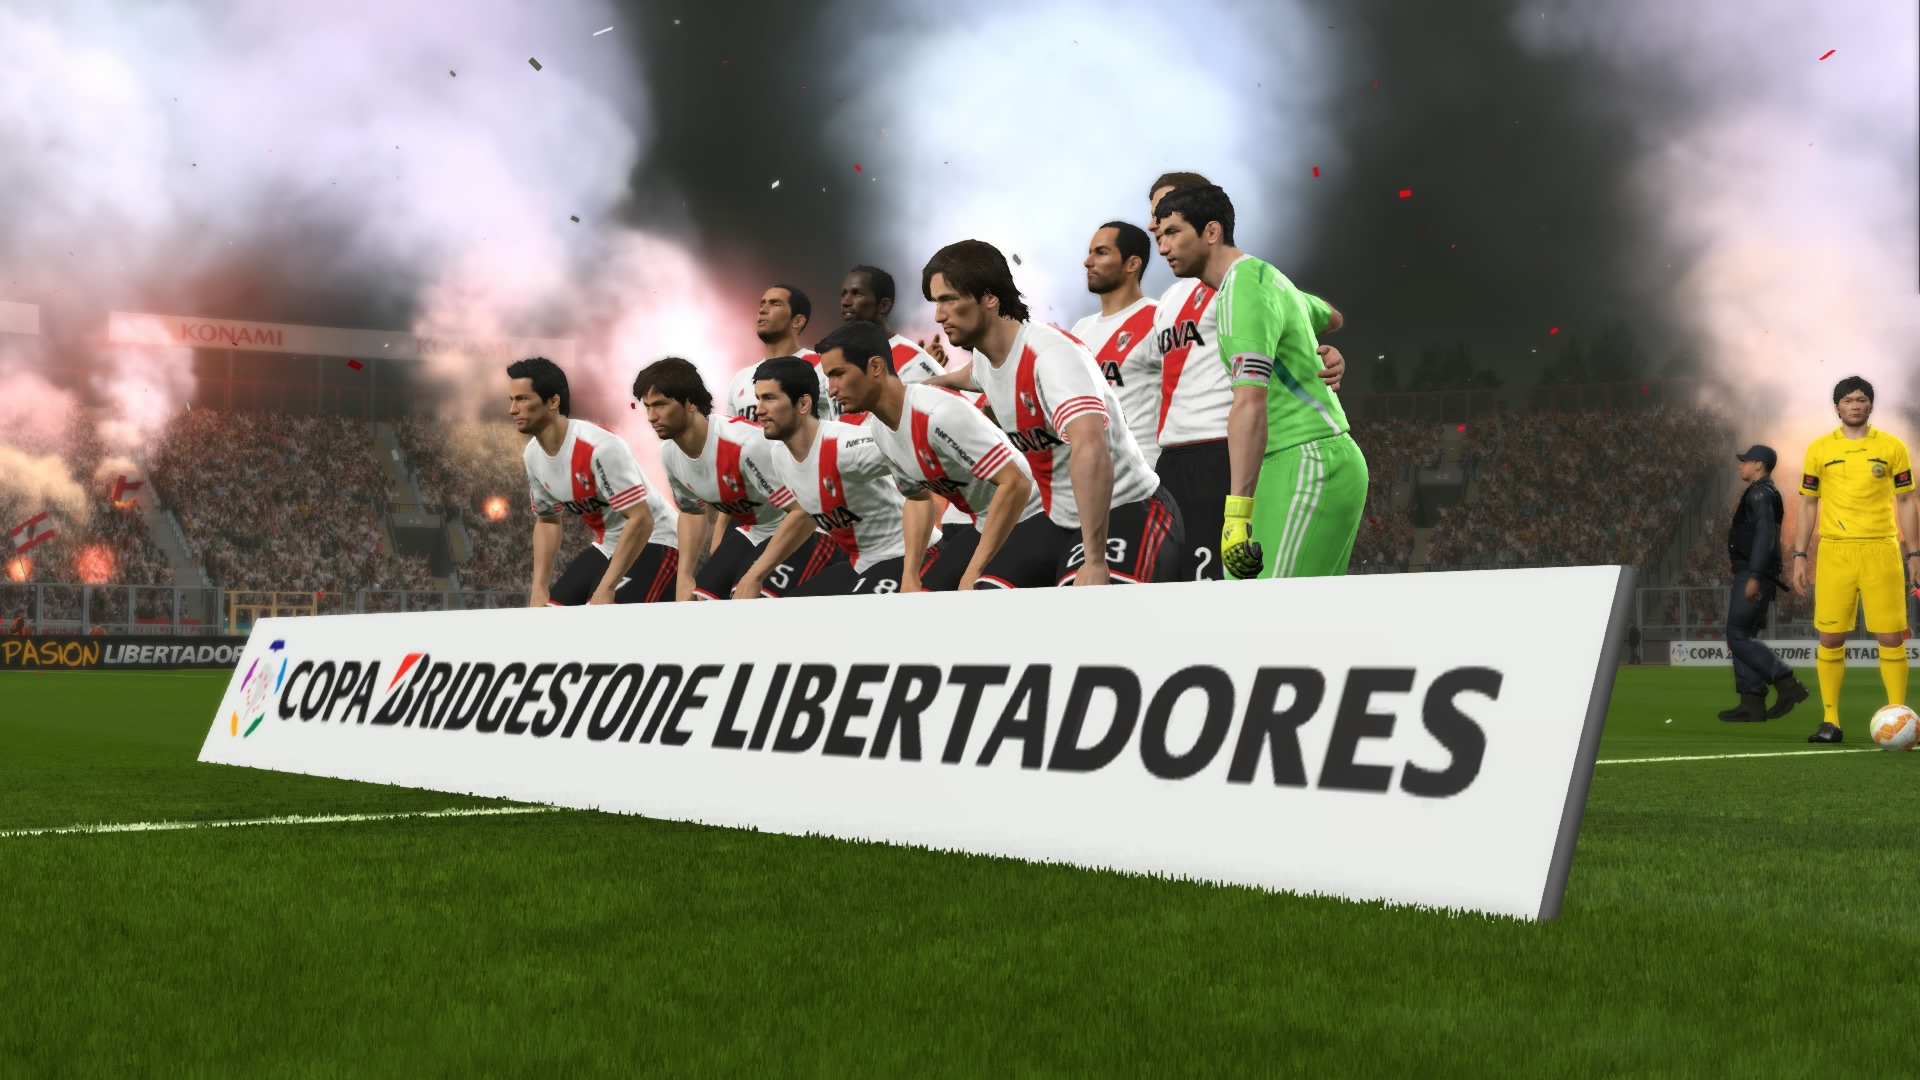 Review: Pro Evolution Soccer 2016 is the game for true